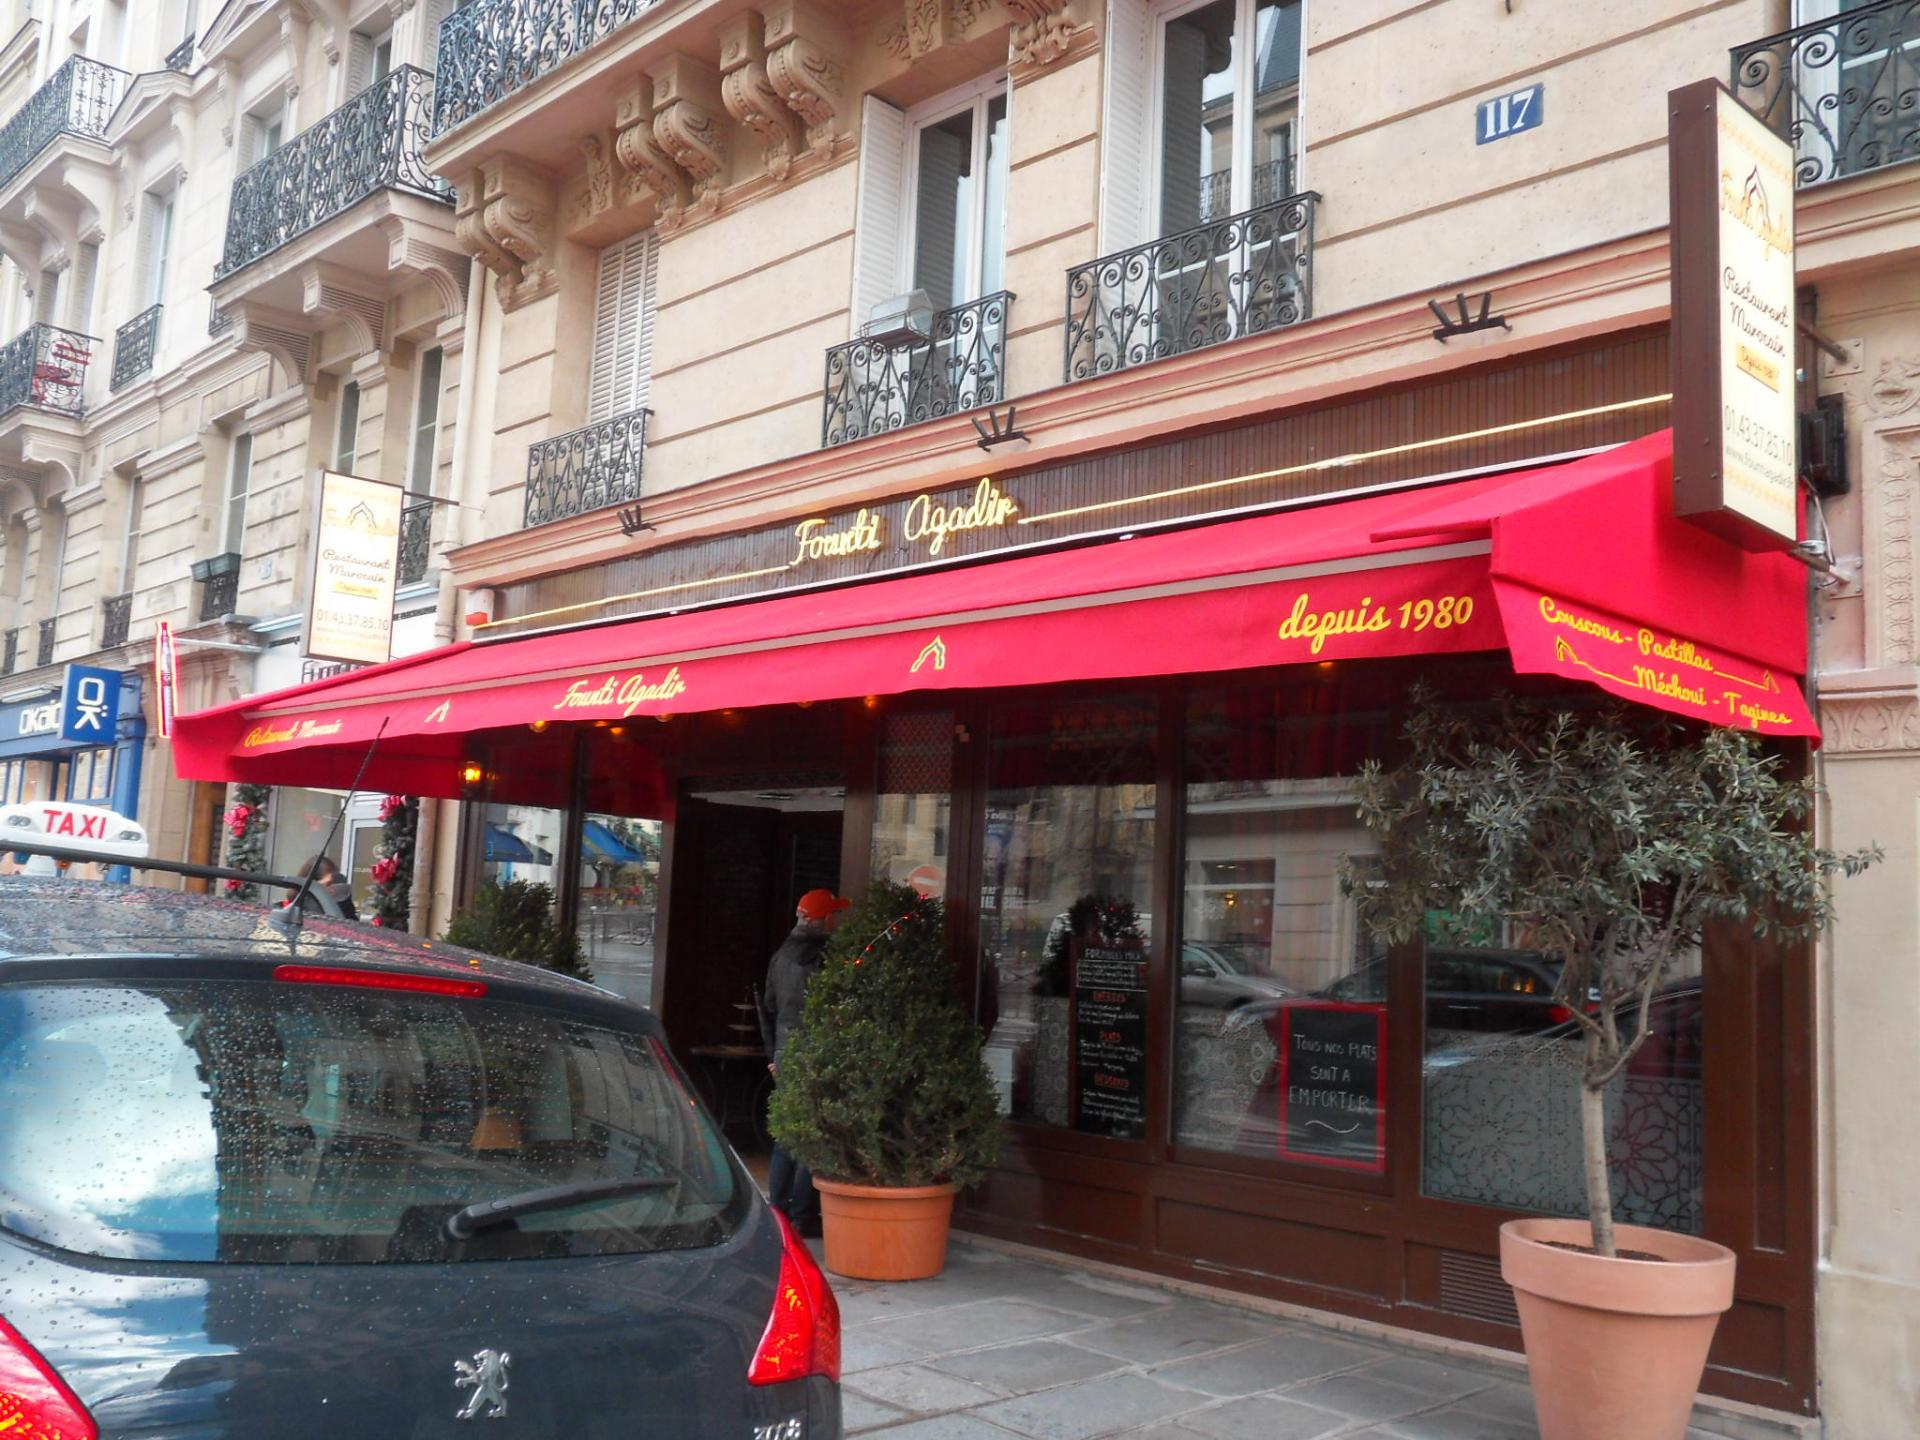 RESTAURANT FOUNTI AGADIR à Paris 5ème